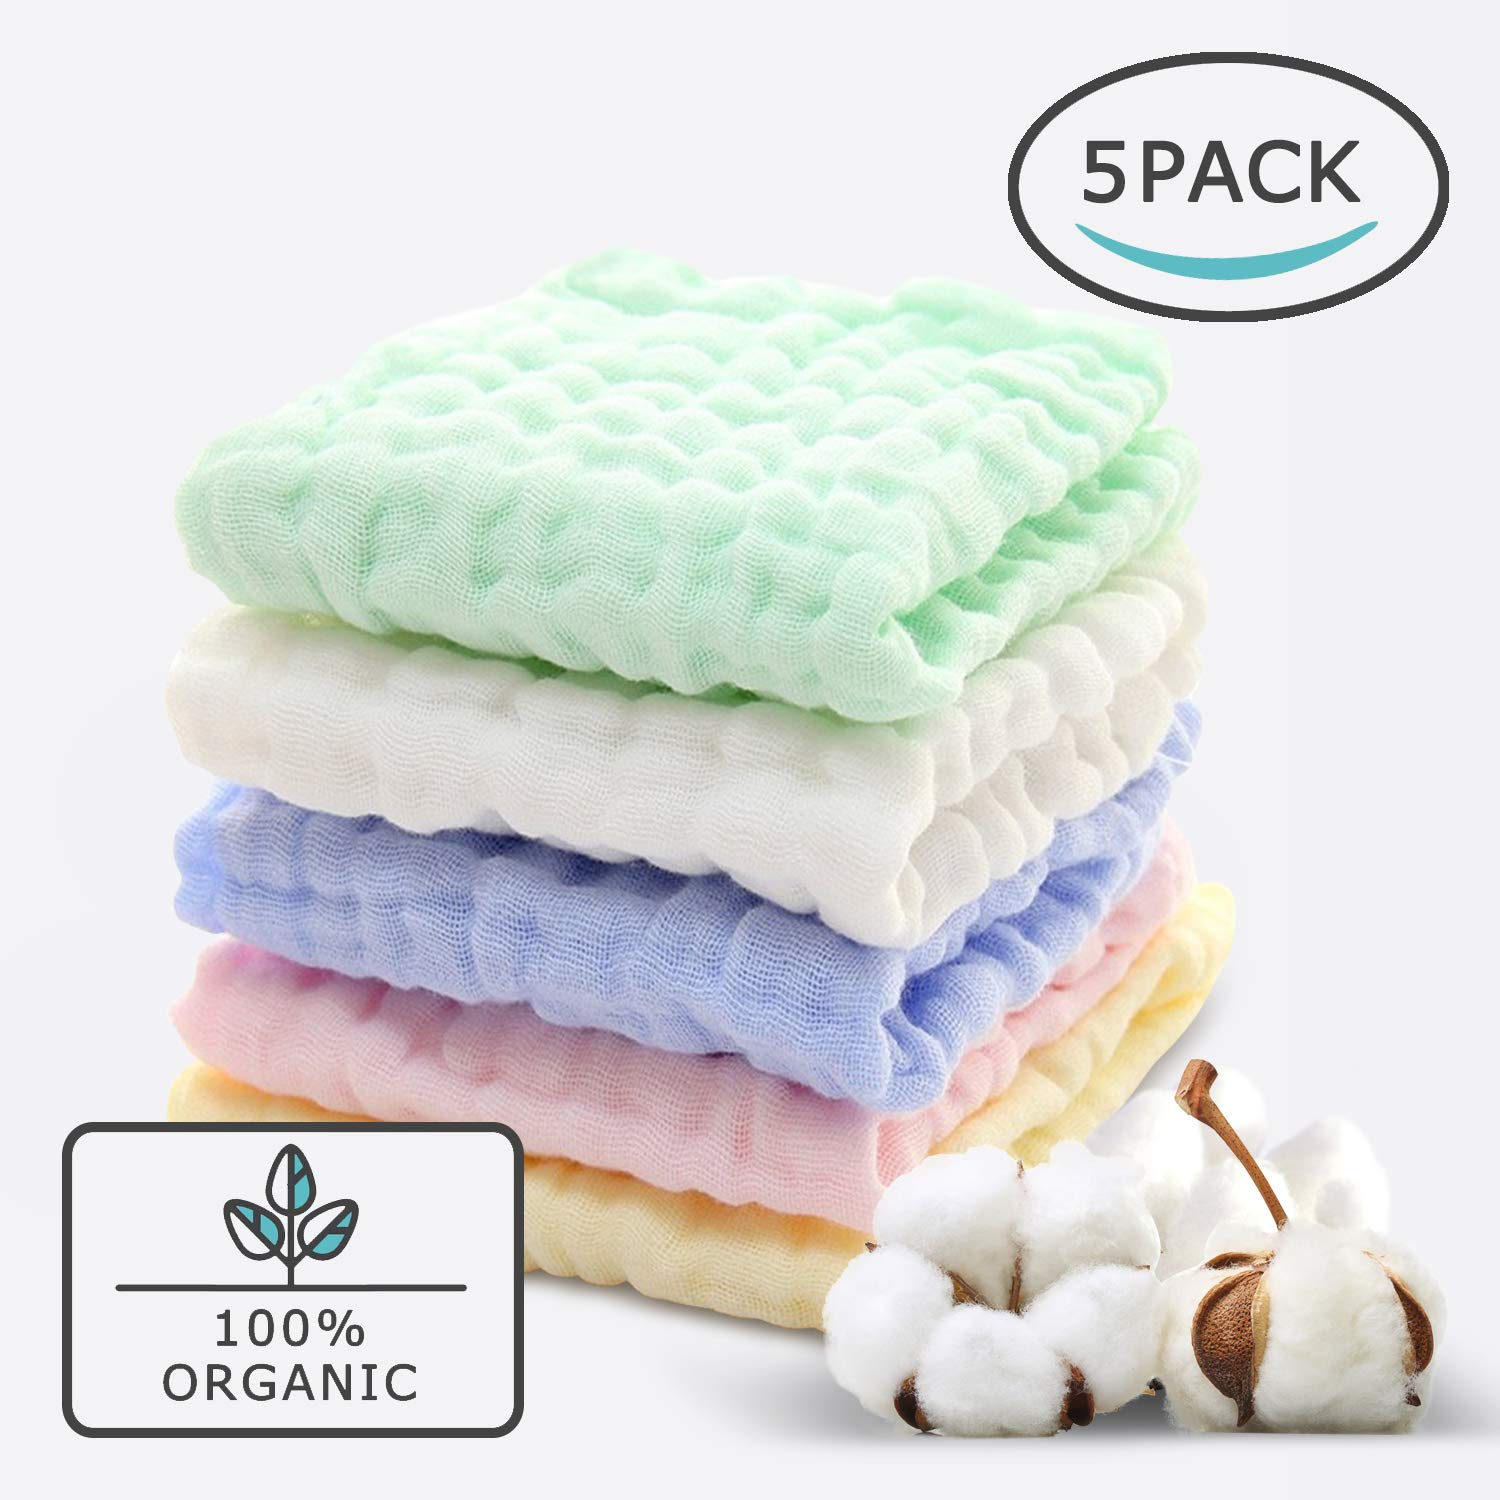 Baby Muslin Organic Washcloths(12x12 Inches,5 Colors)-100% Natural Cotton Baby Wipes-Super Soft Face Towel for Sensitive Skin-Baby Register Shower Gift! LINGQUEEN